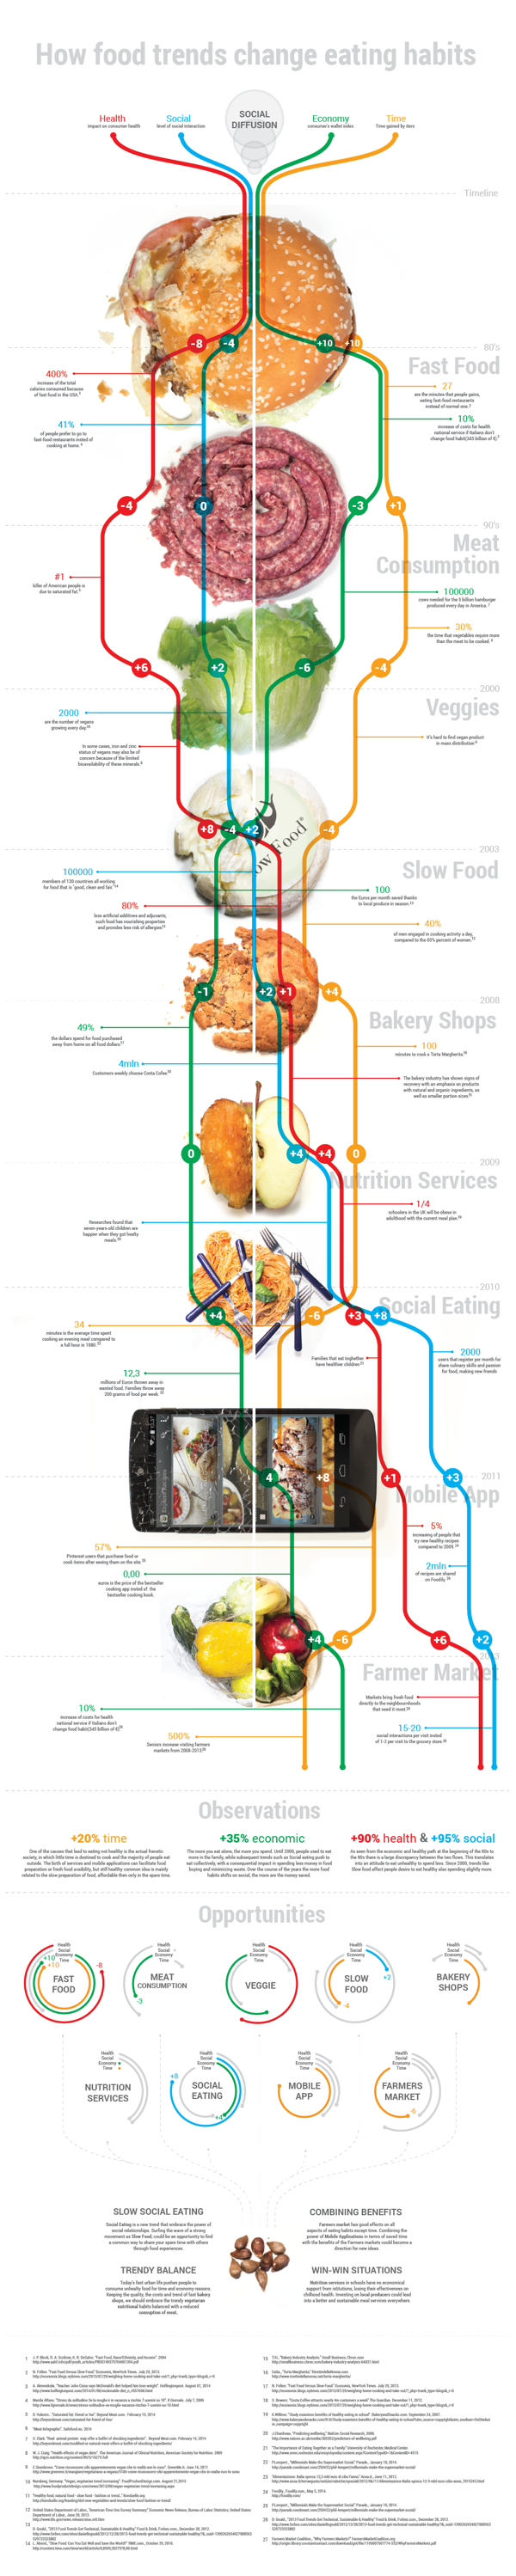 How food trends change eating habits -  [Infographic] How Food Trends Change Eating Habits  - #change #eating #Food #habits #trendfastfood #Trends